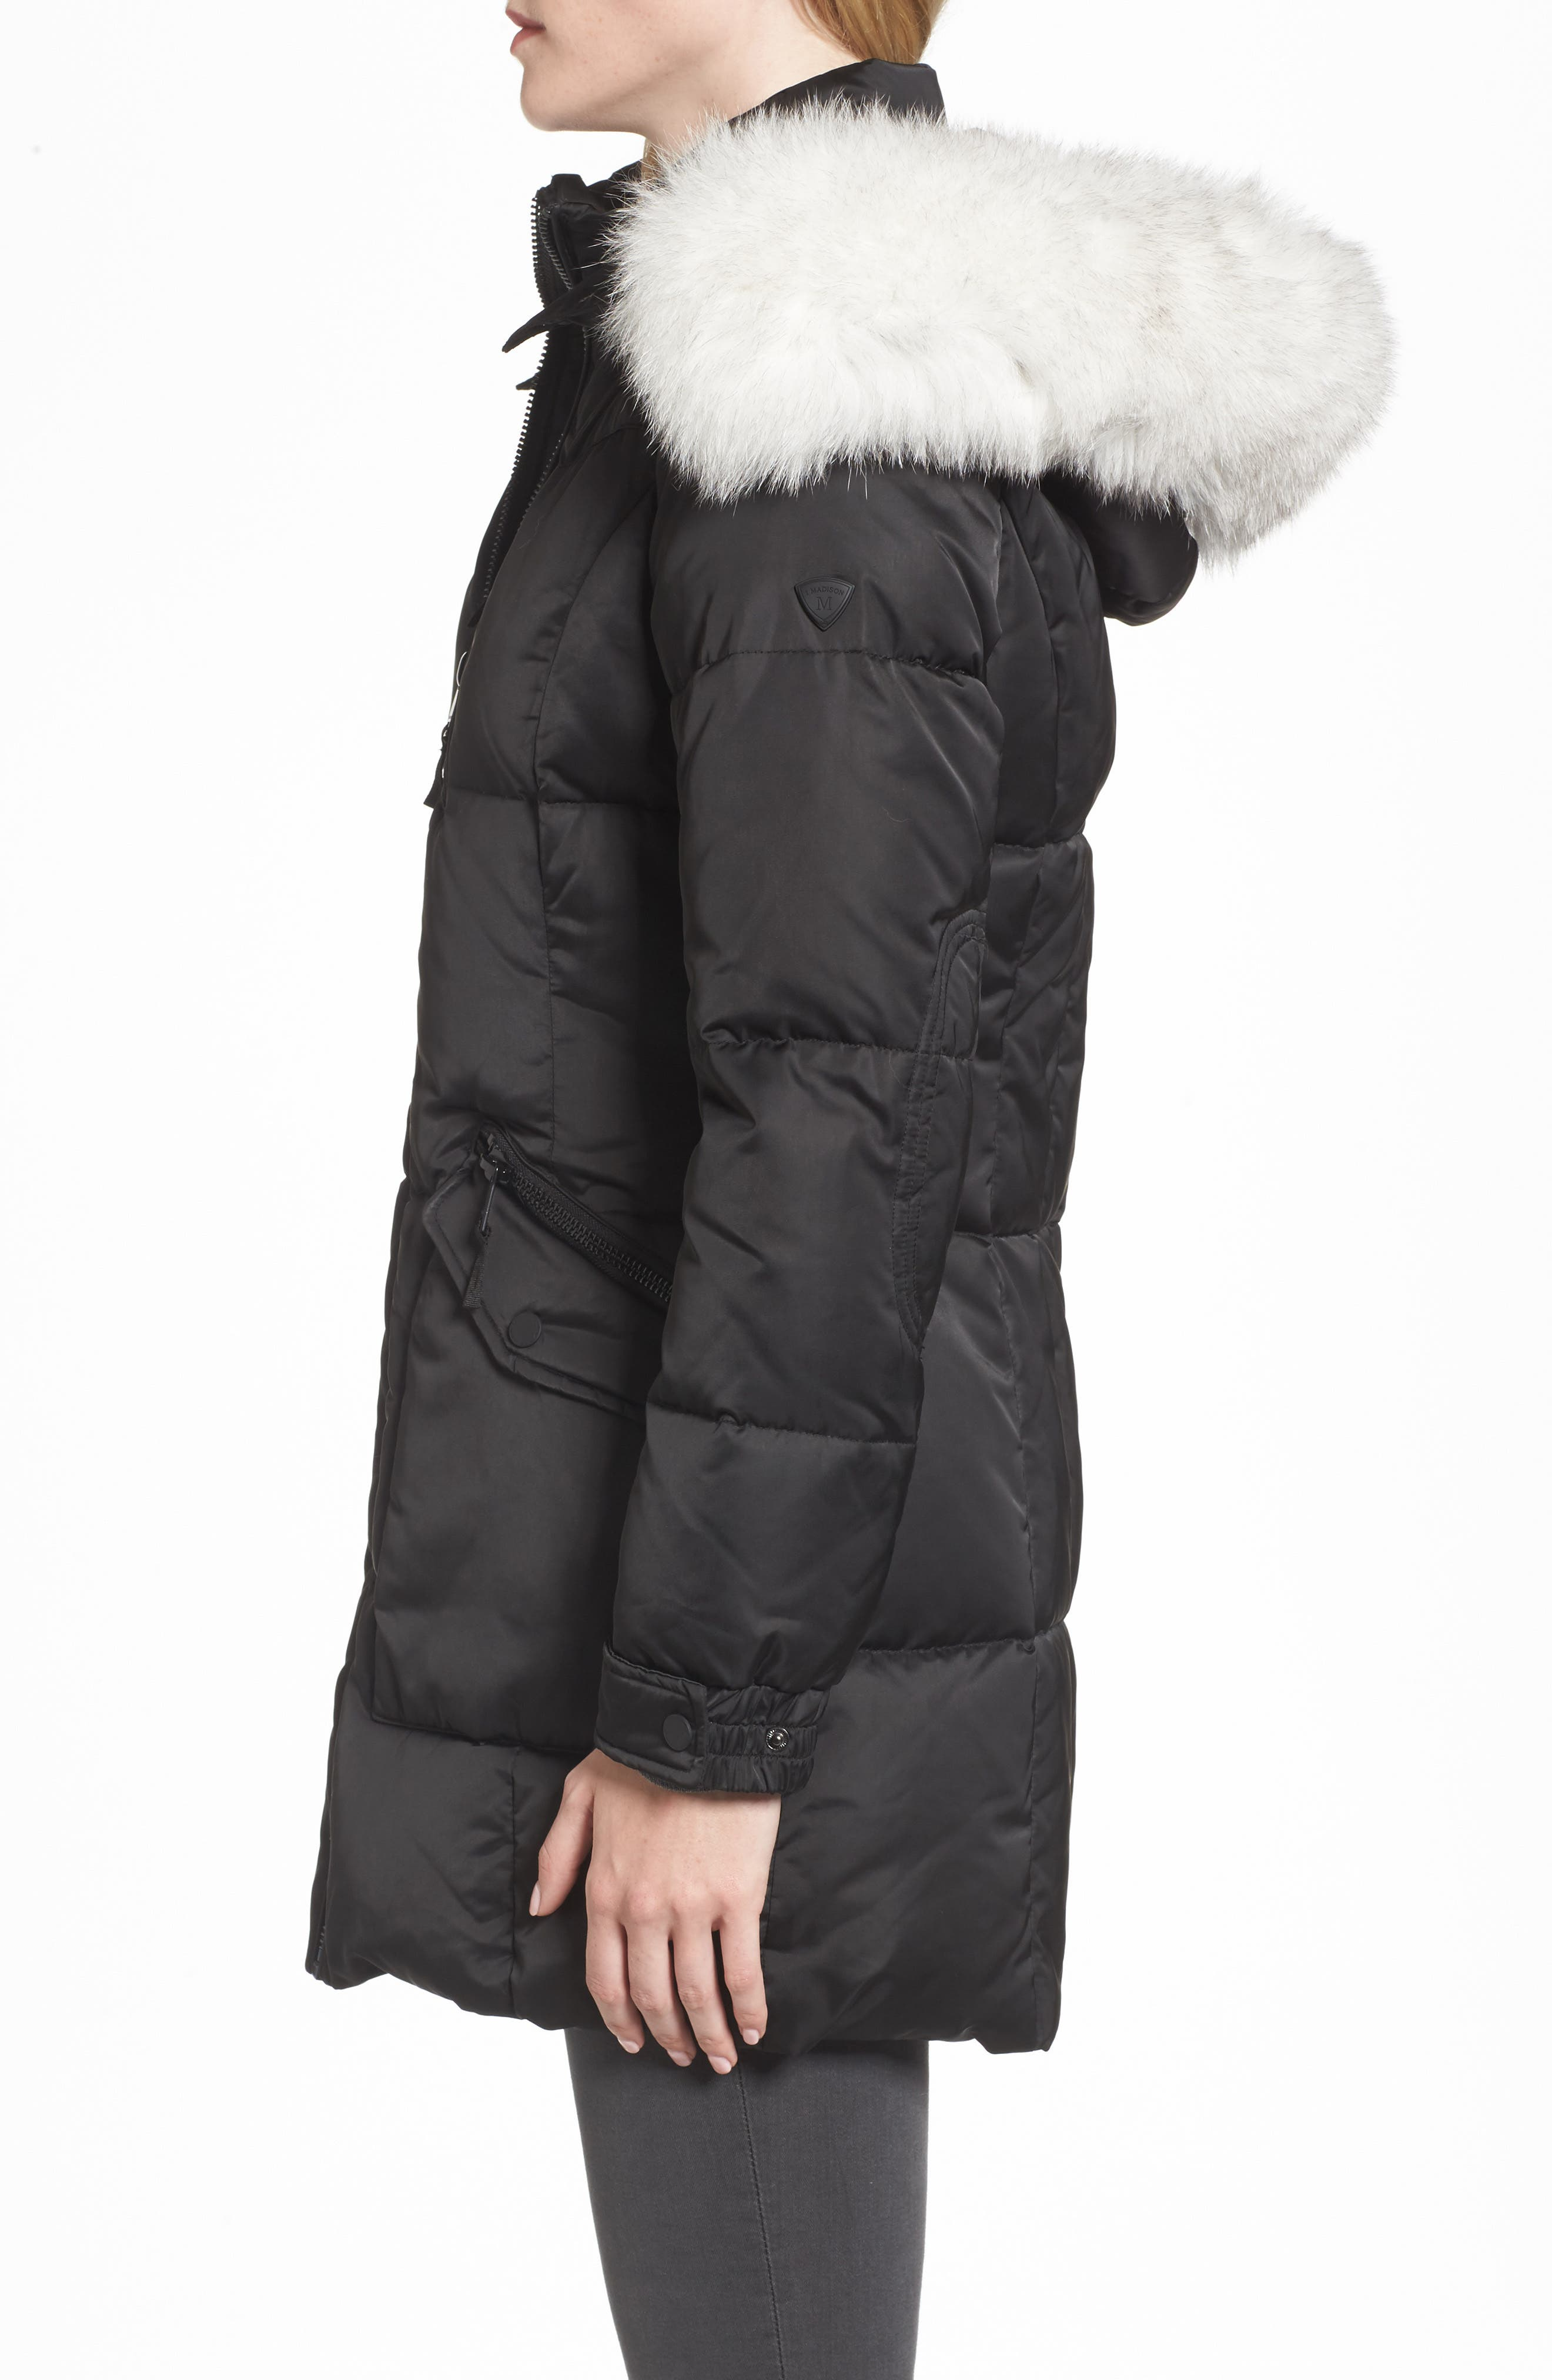 Puffer Jacket with Genuine Fox Fur Trim,                             Alternate thumbnail 3, color,                             Black